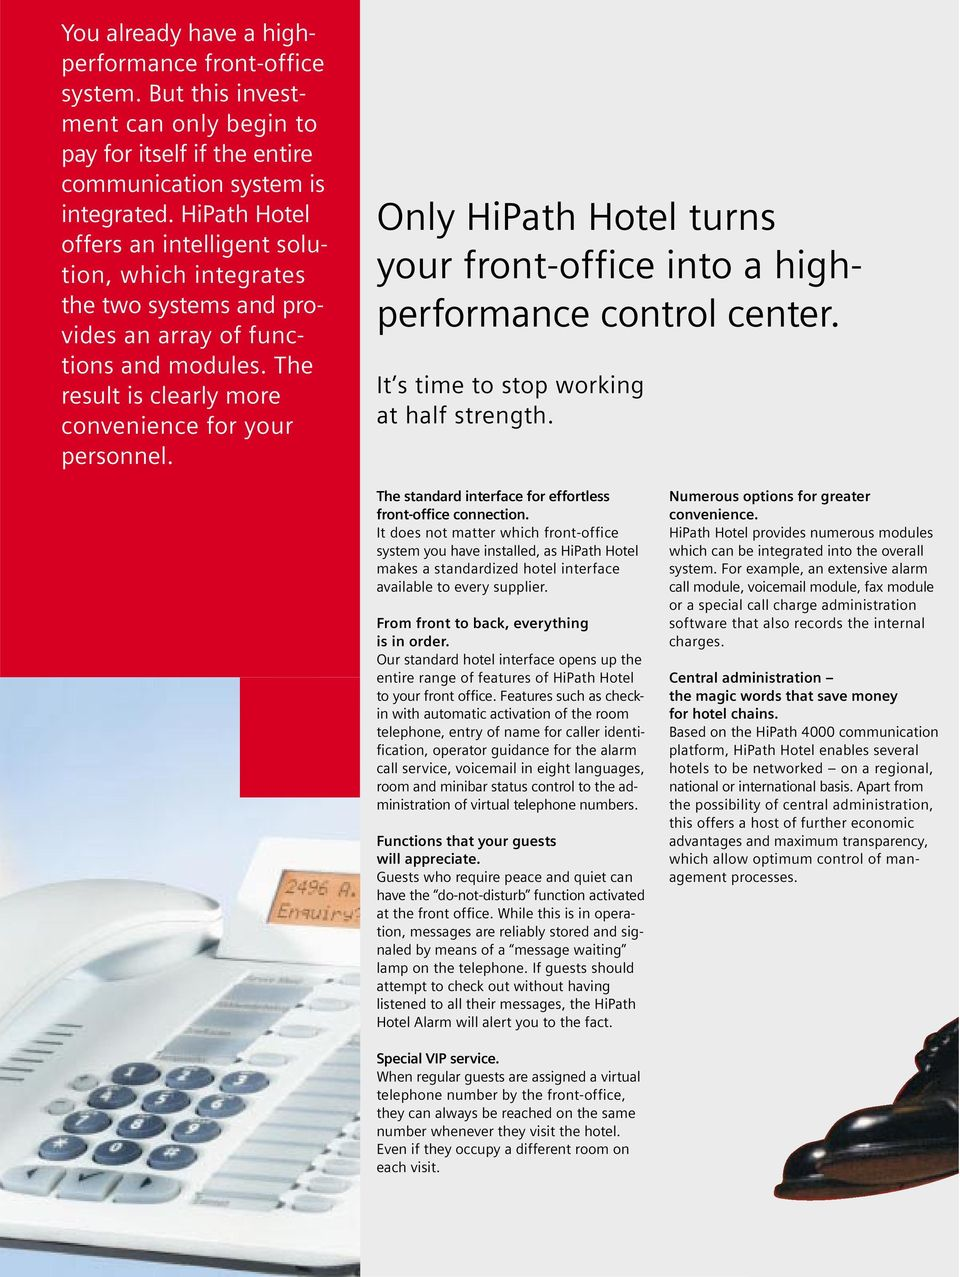 Only HiPath Hotel turns your front-office into a highperformance control center. It s time to stop working at half strength. The standard interface for effortless front-office connection.